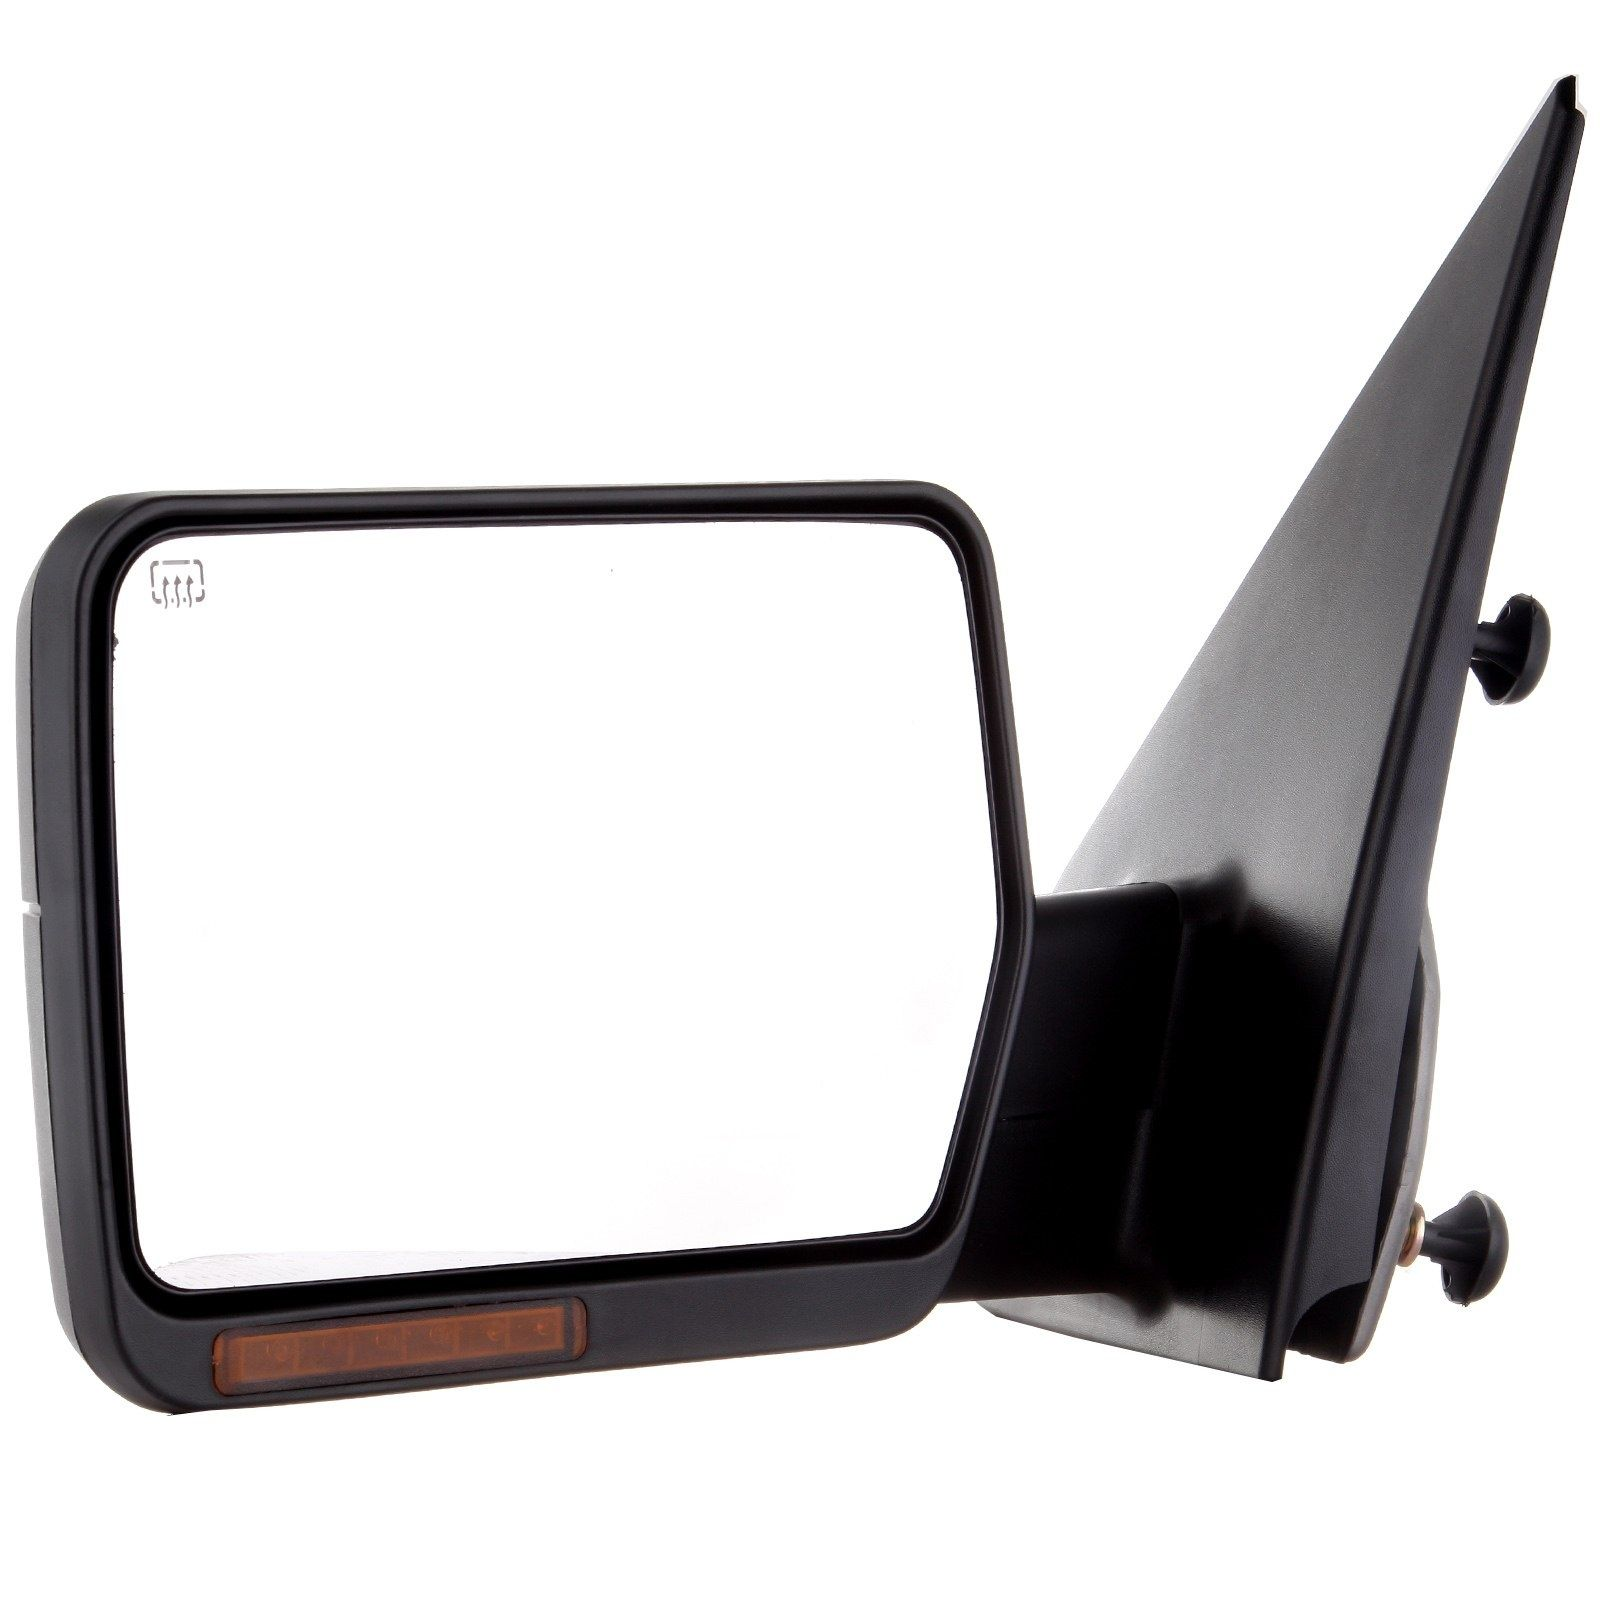 Unique 2006 Ford F150 Passenger Side Mirror Ford F150 2006 Ford F150 F150